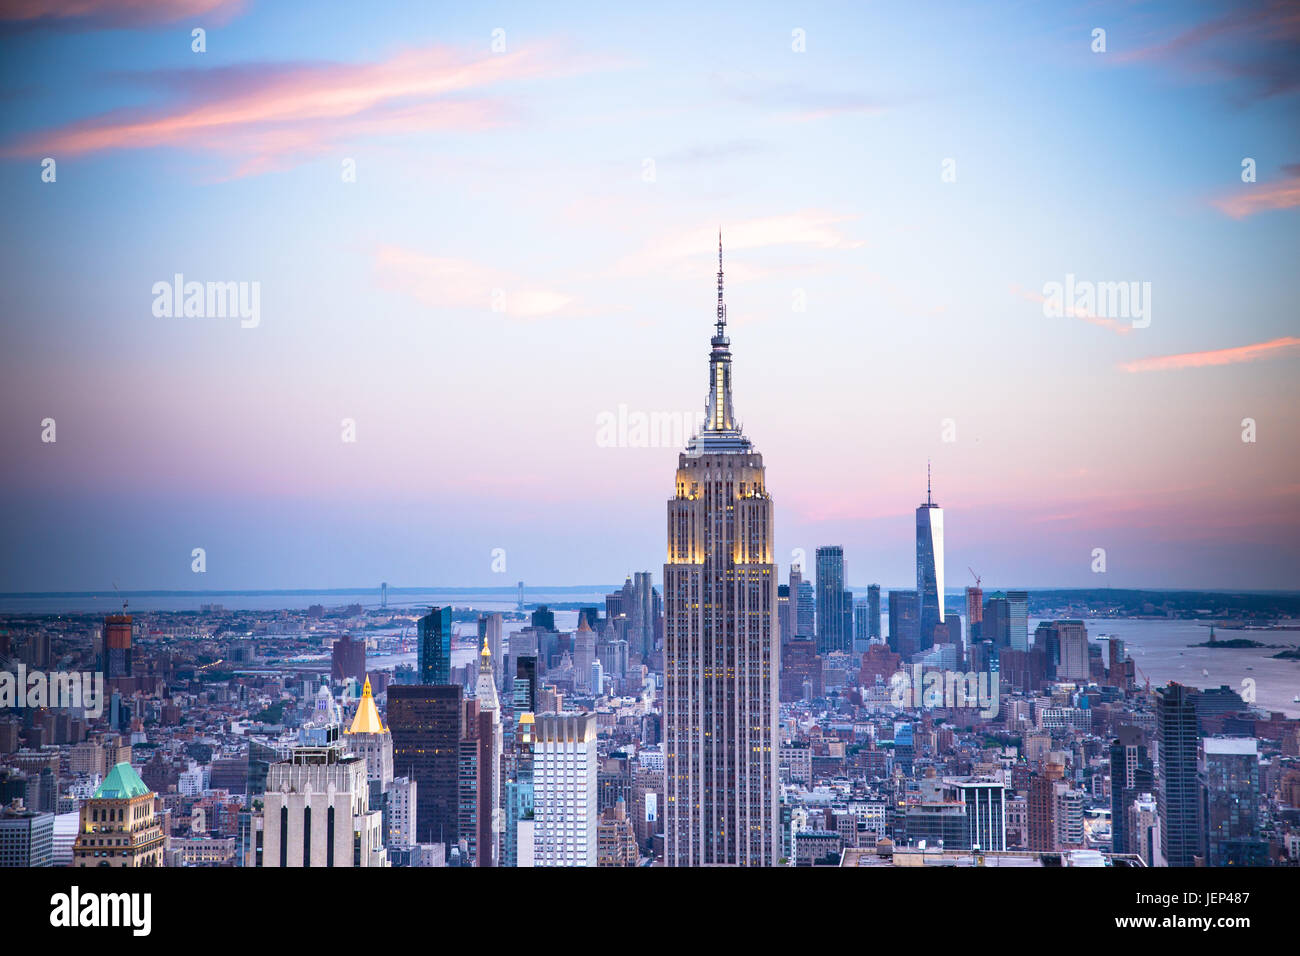 Sunset view of New York City seen from midtown Manhattan looking towards downtown, - Stock Image